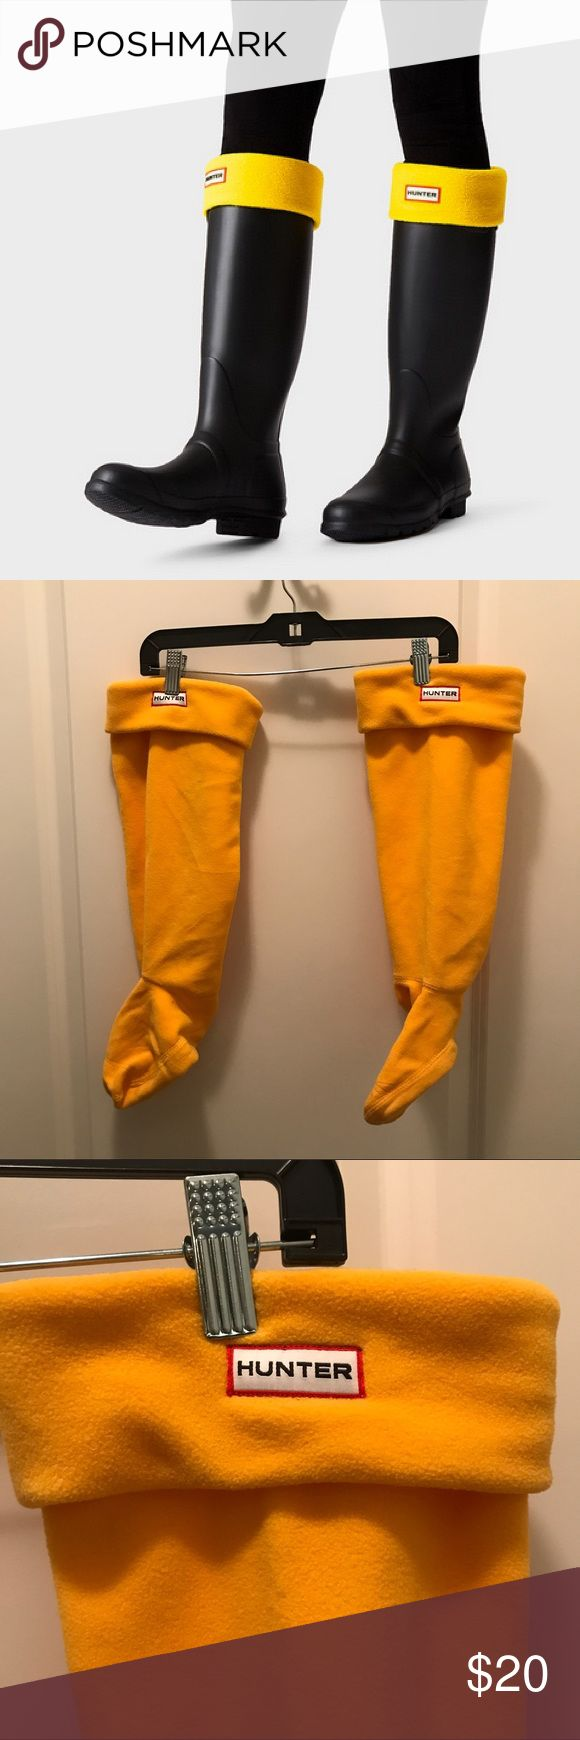 NWOT - Yellow Hunter Boots Socks Super warm fleece socks for the tall Hunter boots! Never worn, great condition. Offers welcome Hunter Boots Shoes Winter & Rain Boots